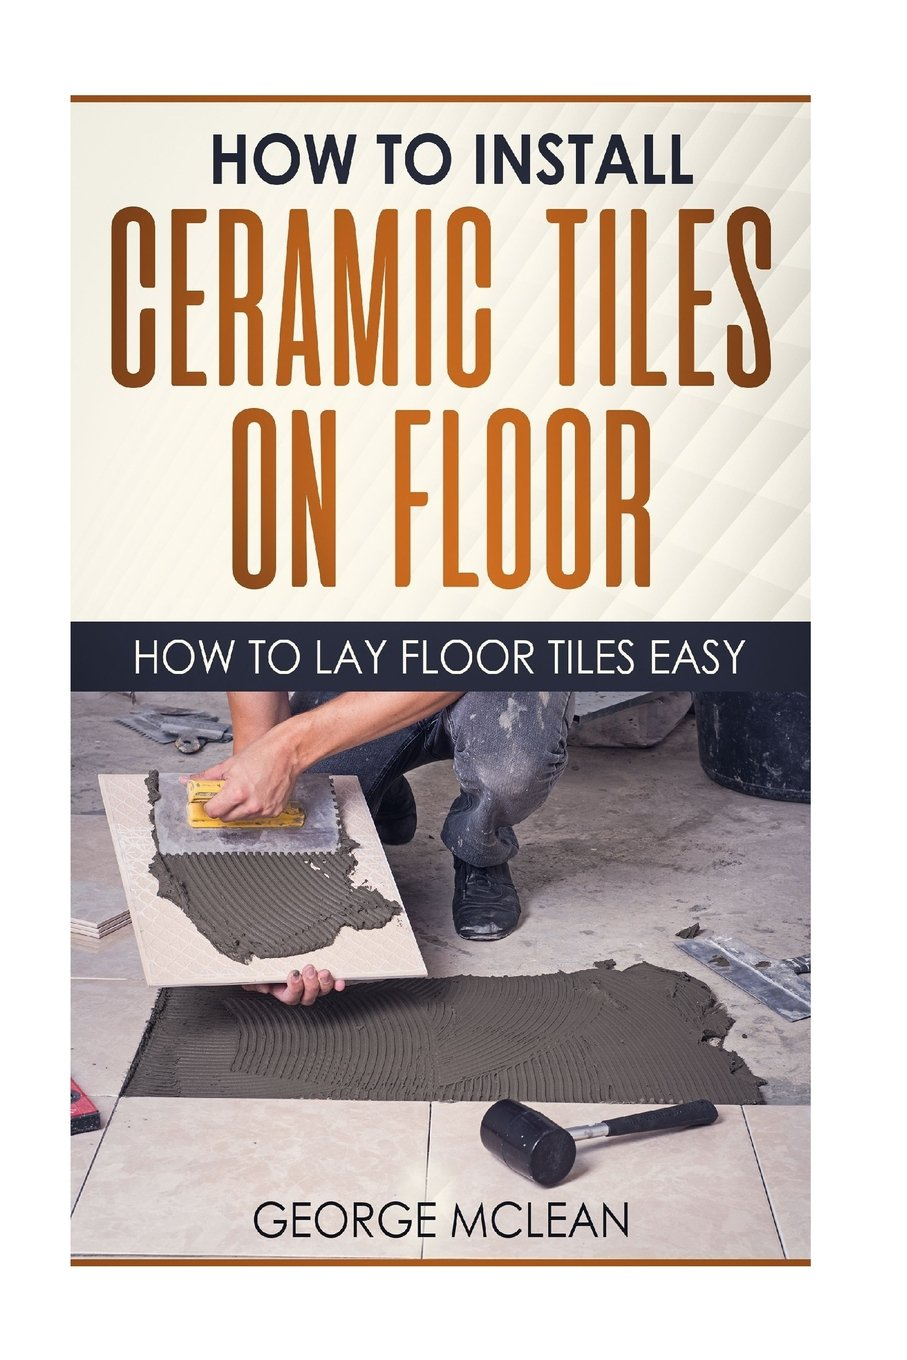 How To Install Ceramic Tiles On Floor How To Lay Floor Tiles Easy